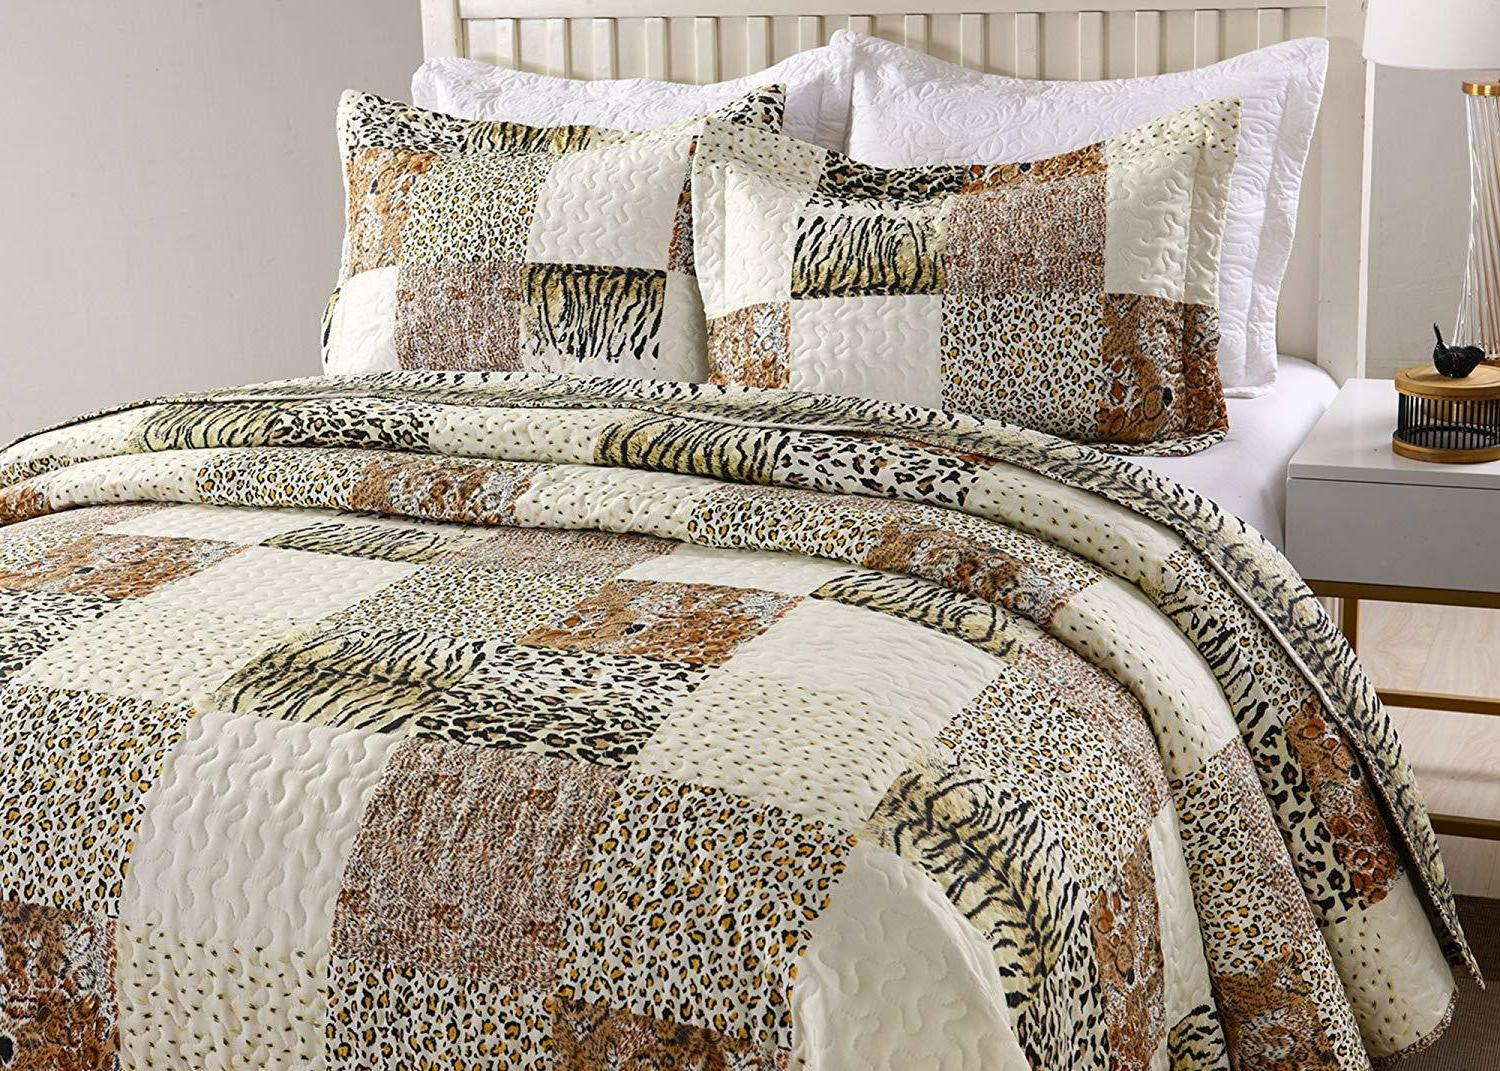 3Pc Quilt Bedspread Sets Bedding Coverlet Bedroom Cheetah Ca